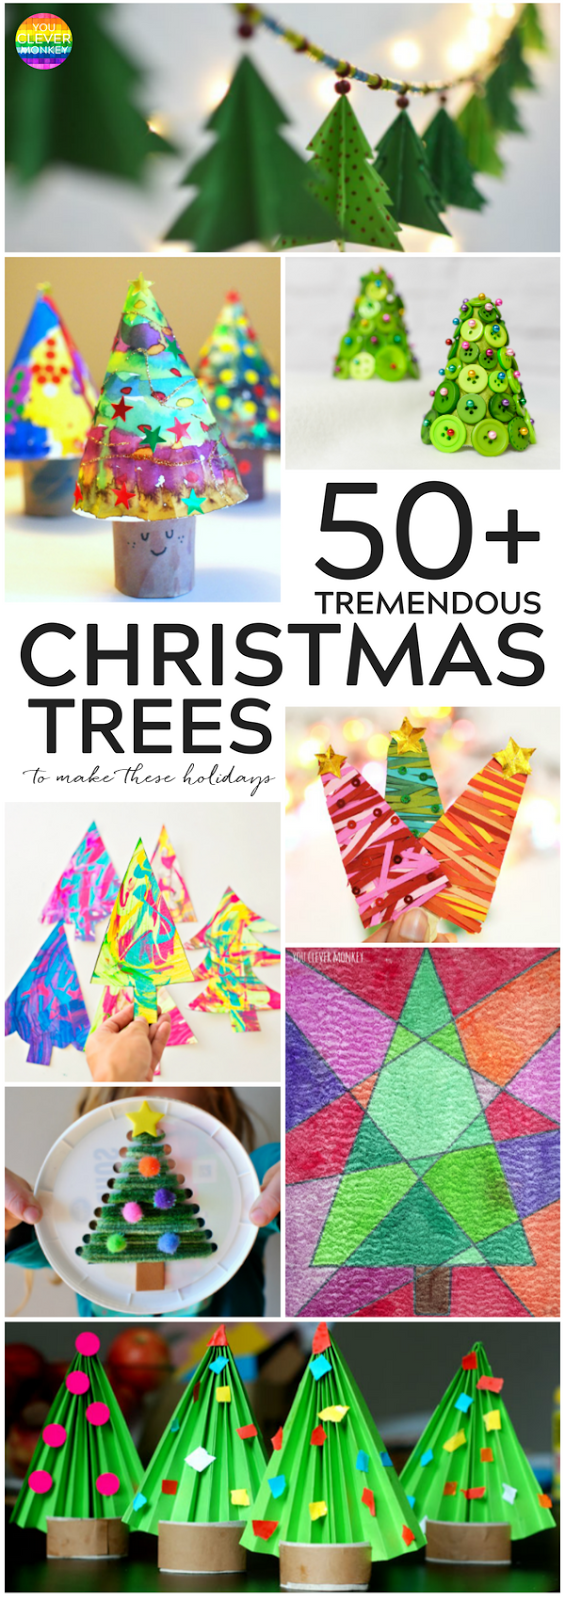 50+ Christmas Tree Crafts To Make This Christmas | you clever monkey